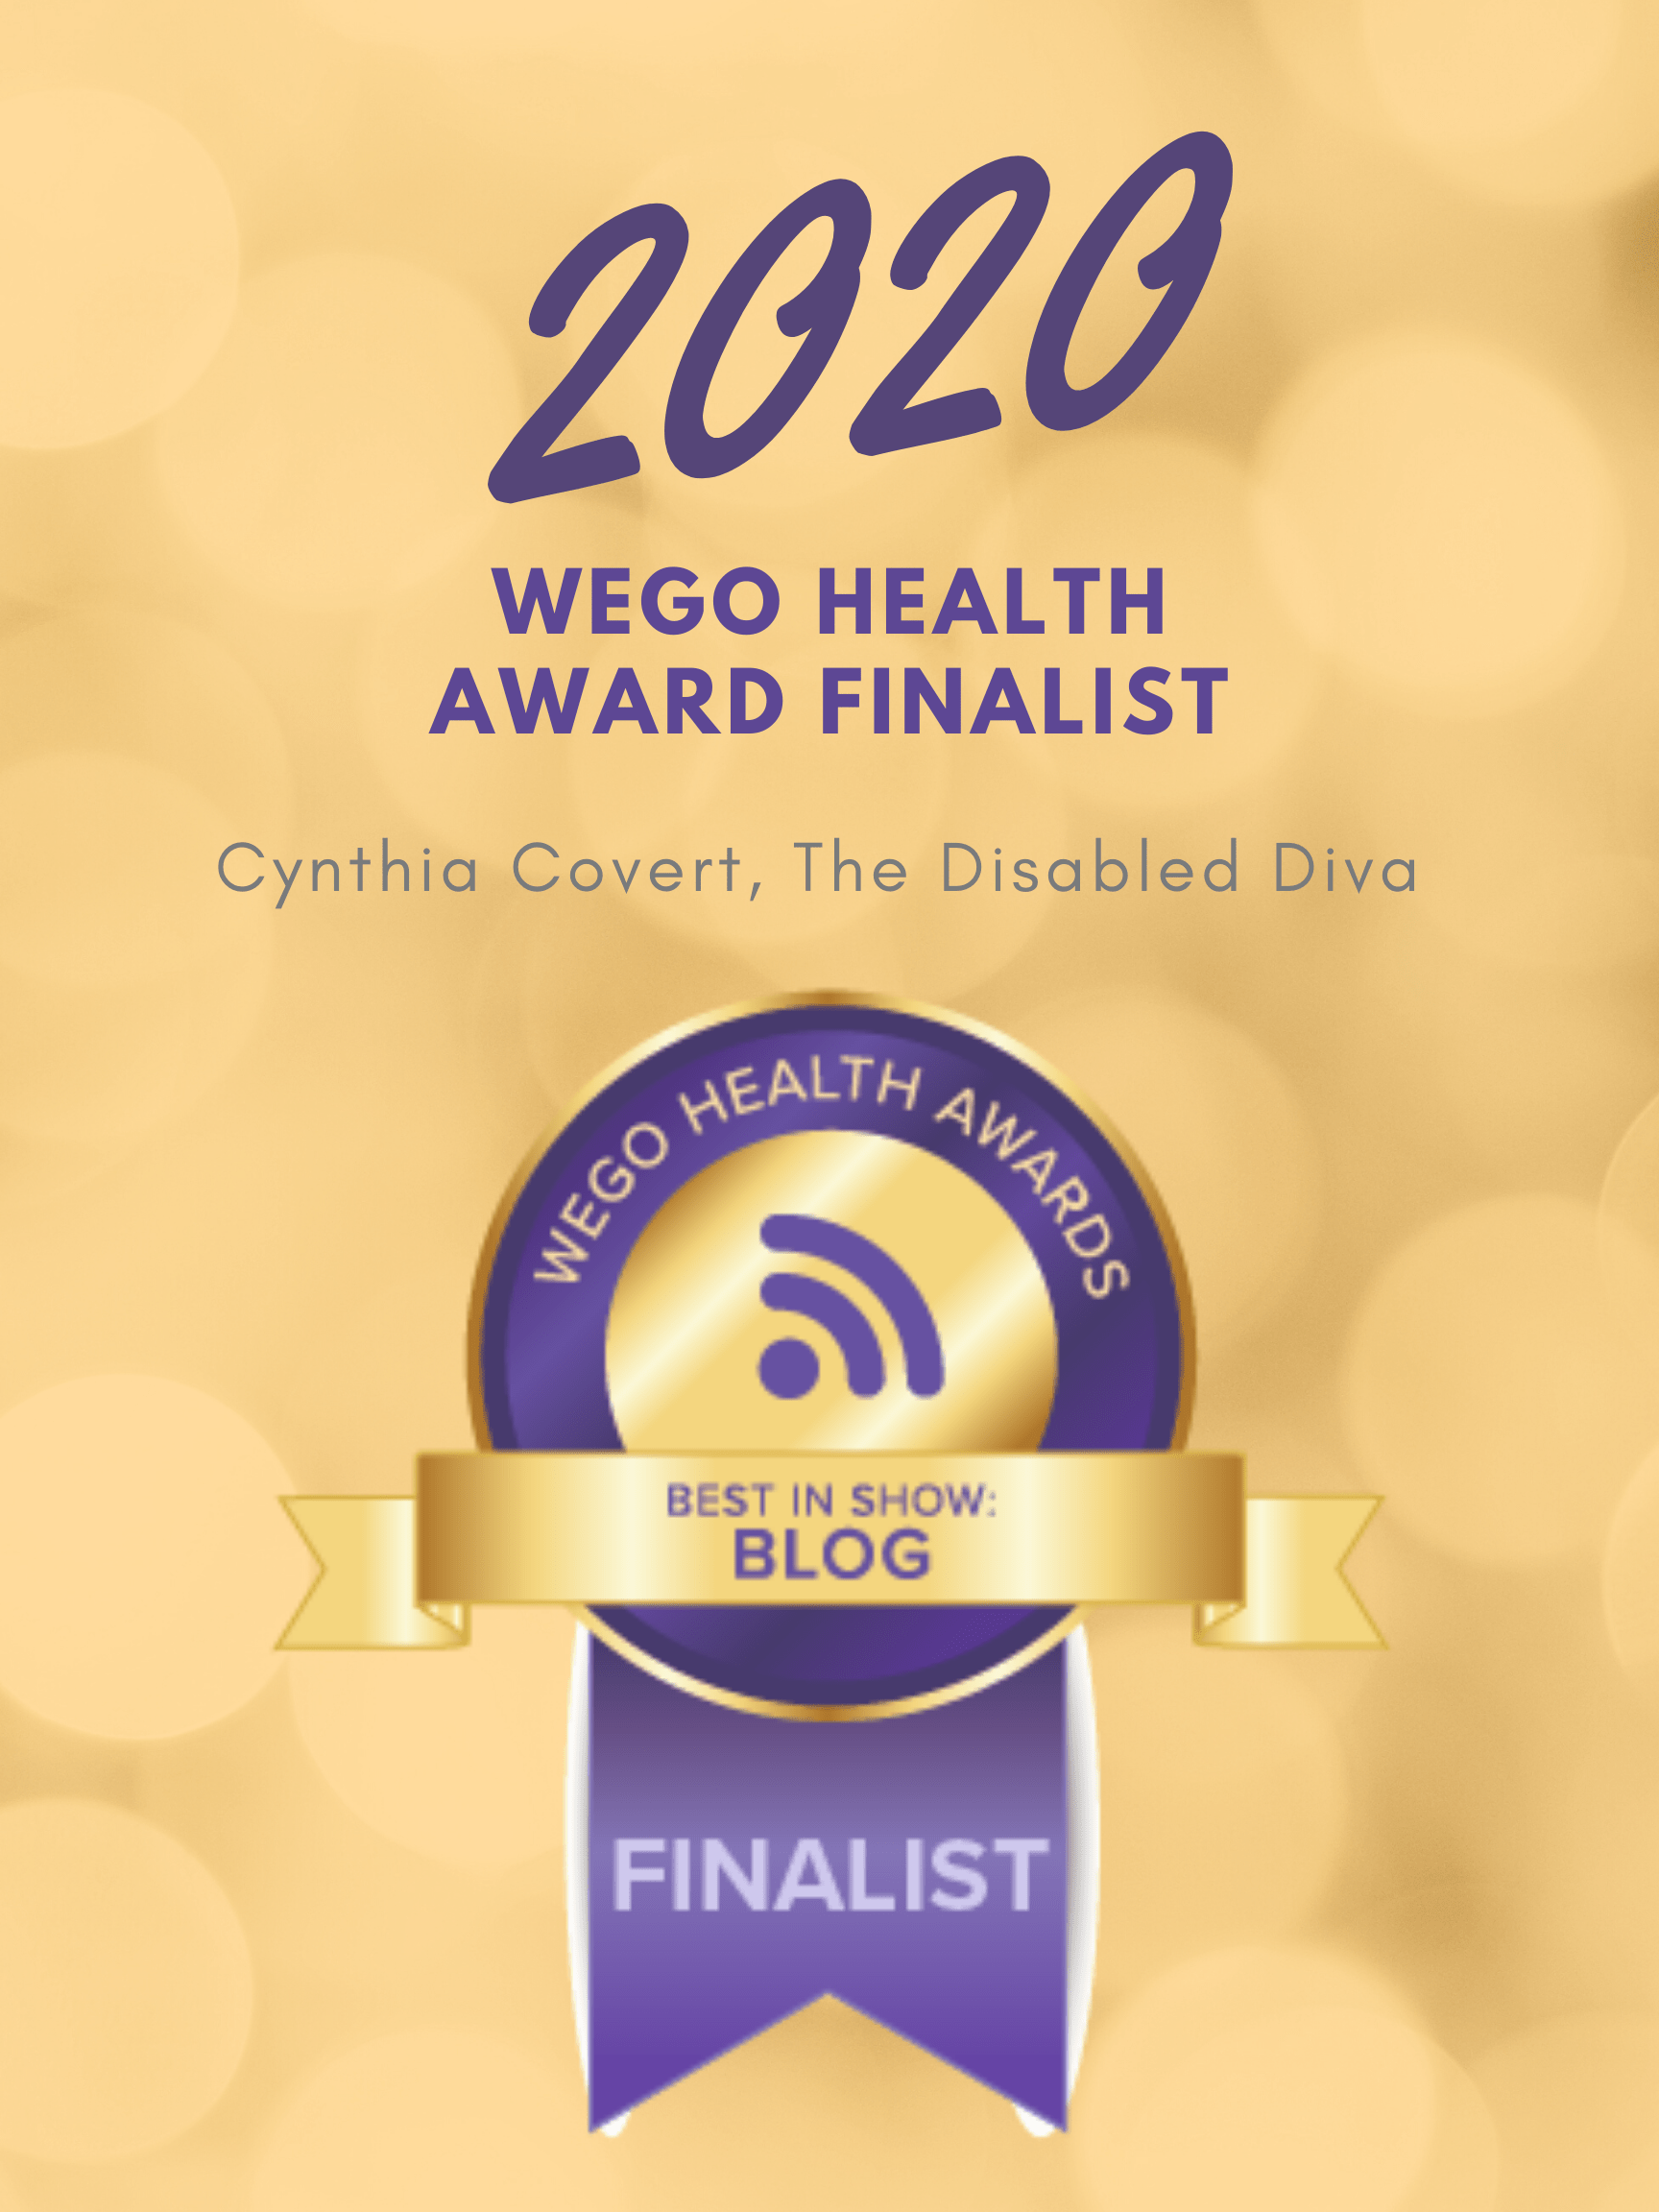 Cynthia Covert, The Disabled Diva is a Best in Blog finalist for the 2020 WEGO Health Awards!